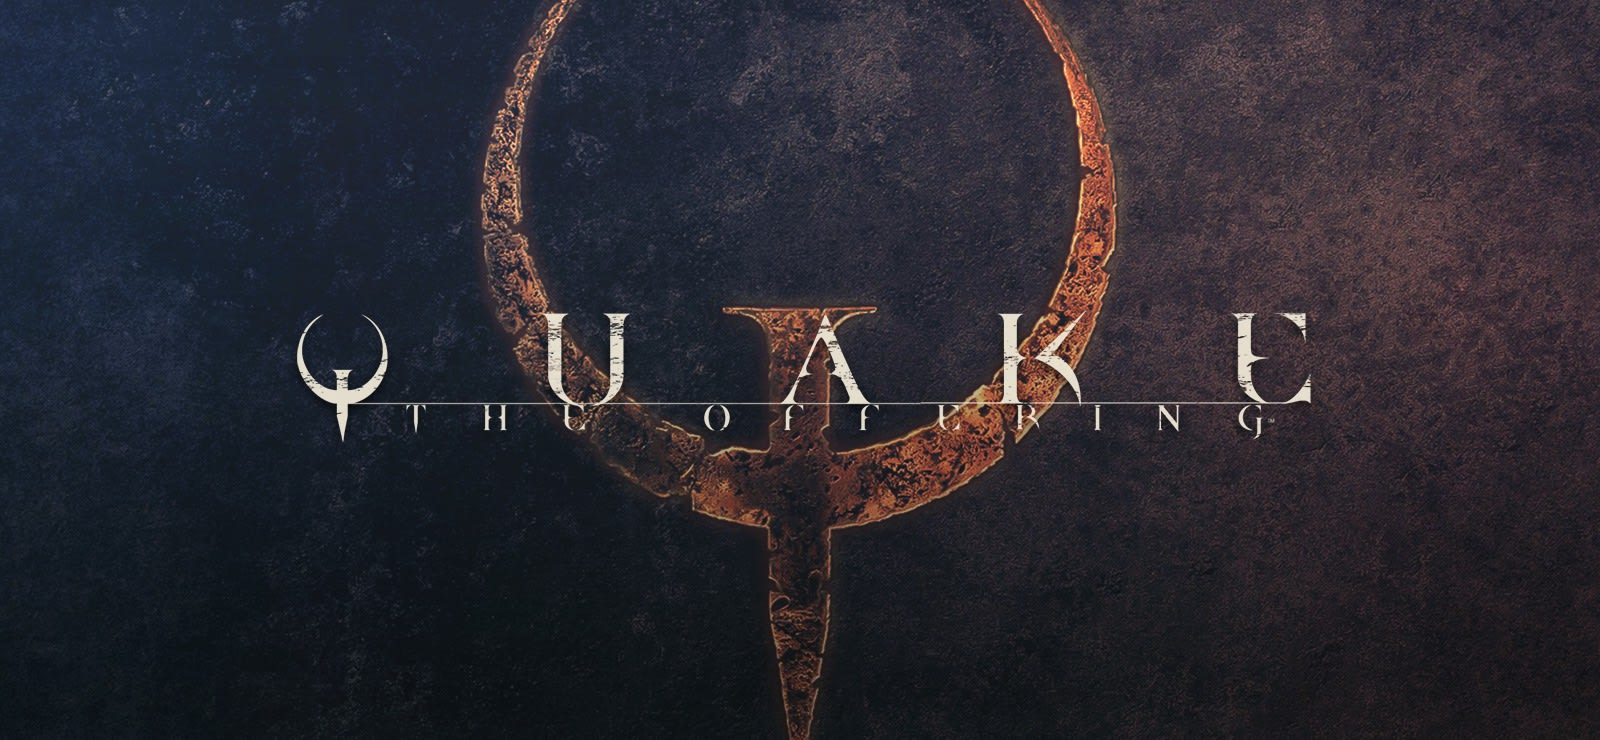 Quake: The Offering varies-with-device